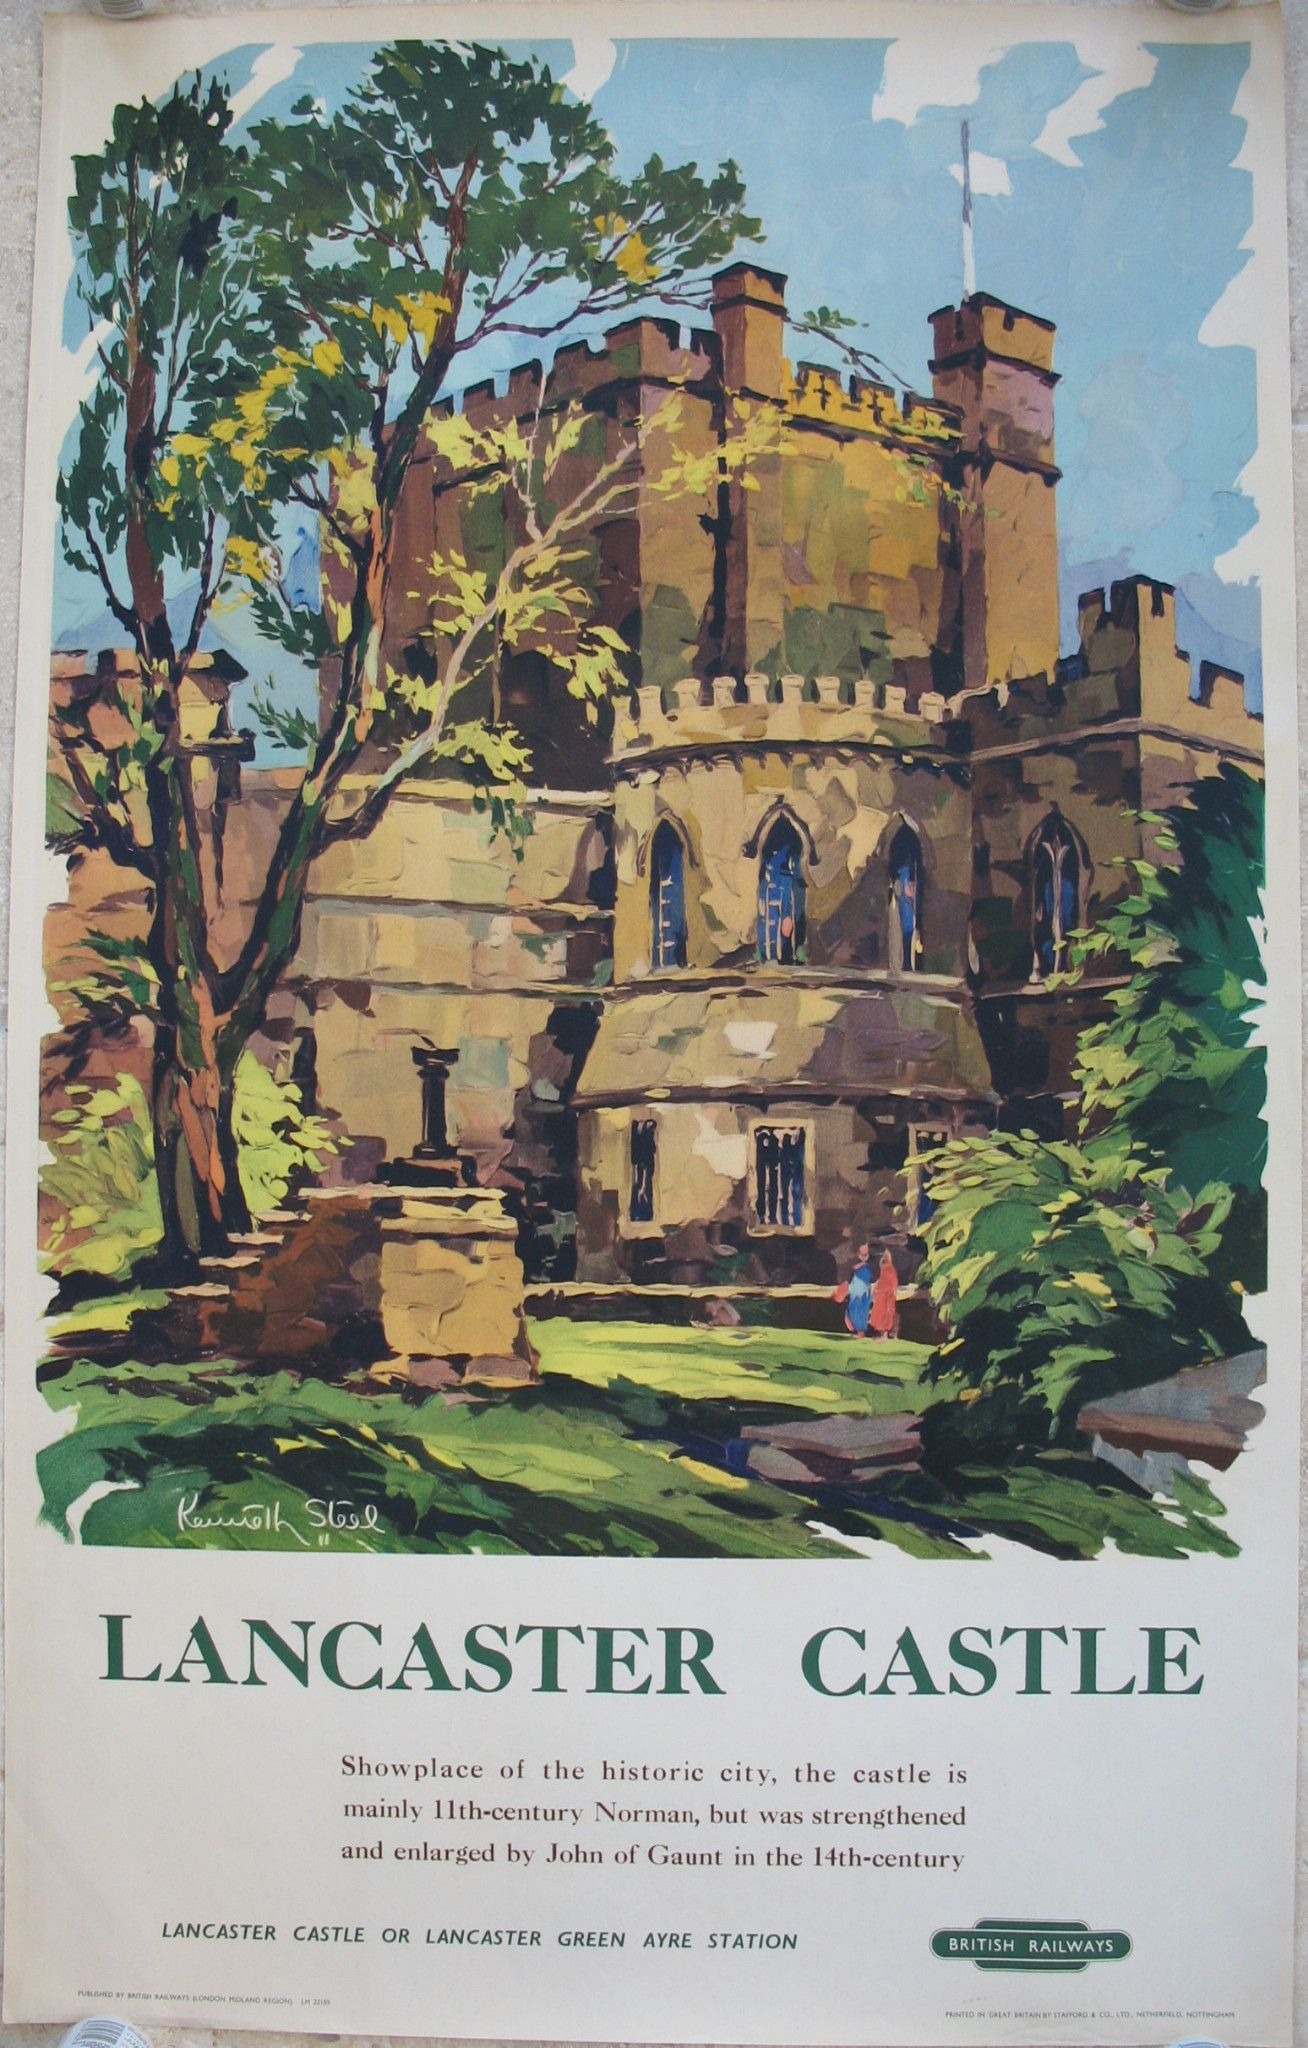 Lancaster Castle, by Kenneth Steel. A lovely peaceful image inside the walls of the Norman castle in the late 1950s, probably looking towards Hanging Corner. Original Vintage Railway Poster available on originalrailwayposters.co.uk